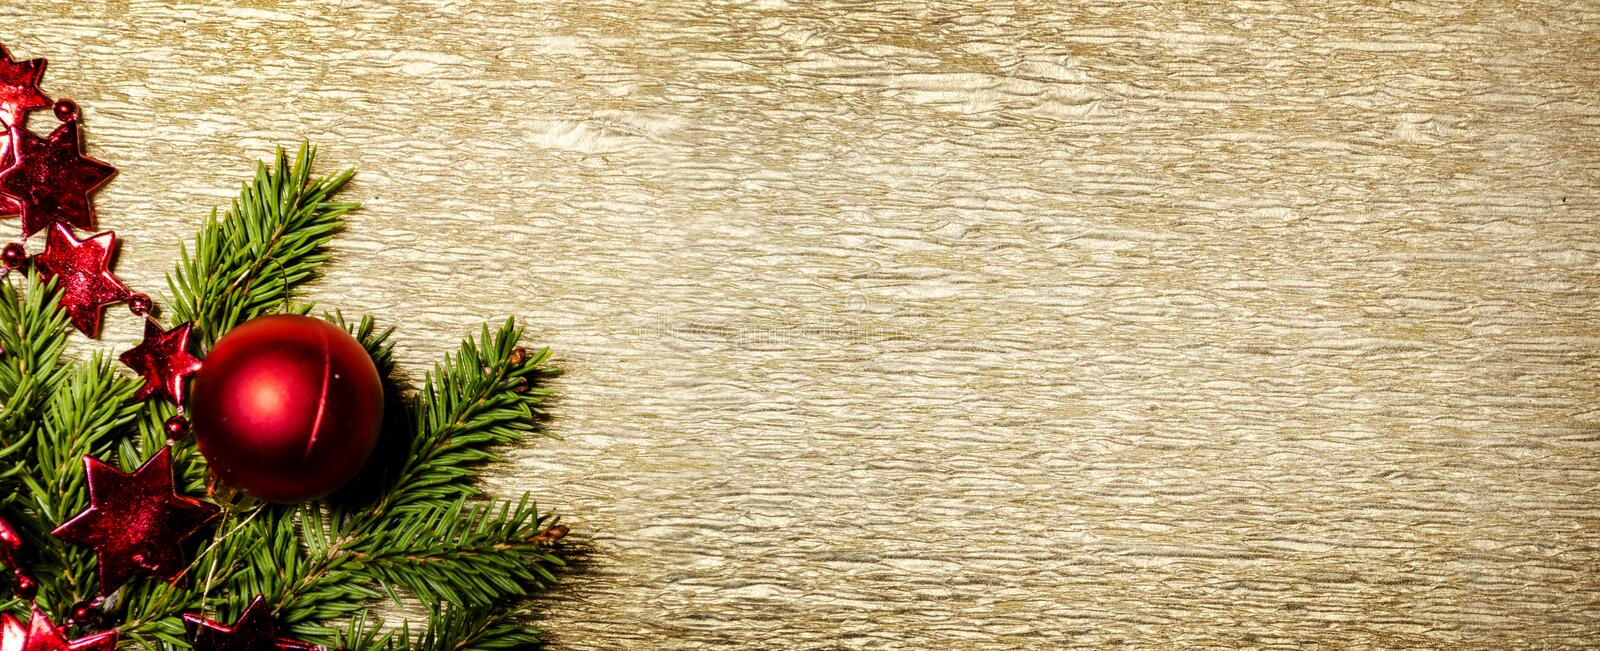 Christmas and new year luxury golden background design. Holiday xmas decoration and pine tree on gold glitter texture royalty free stock photos